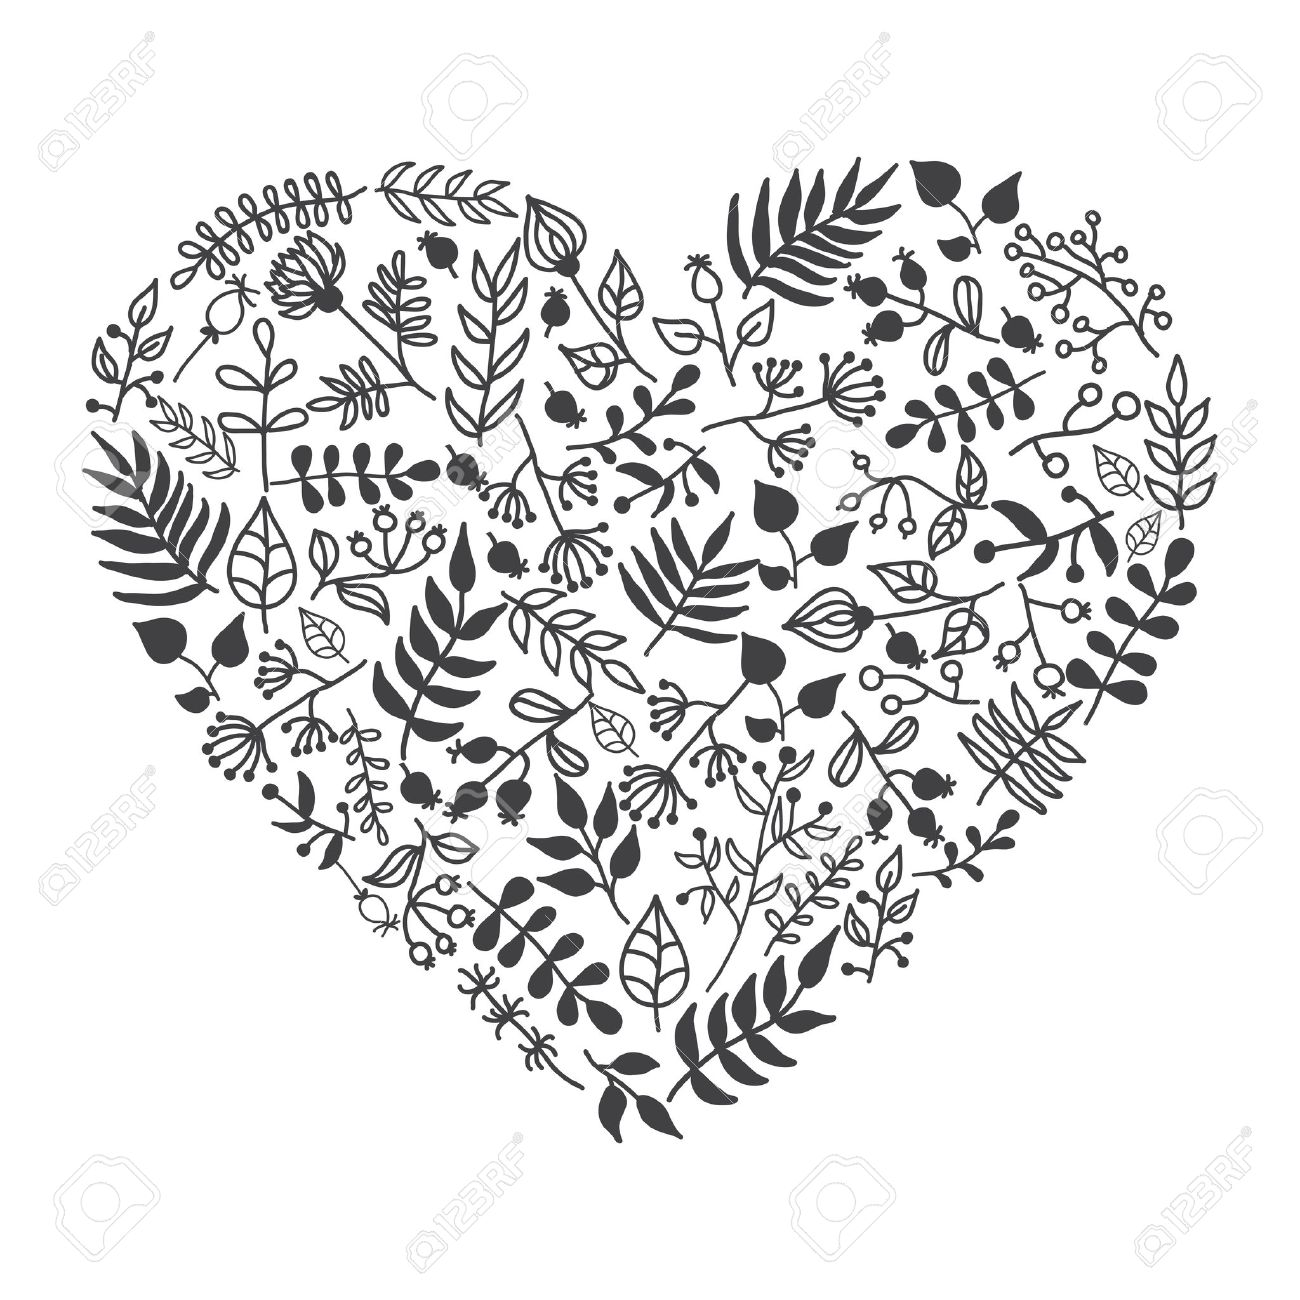 1300x1300 Vector Rustic Floral Heart Shape Illustration. Hand Draw. Great